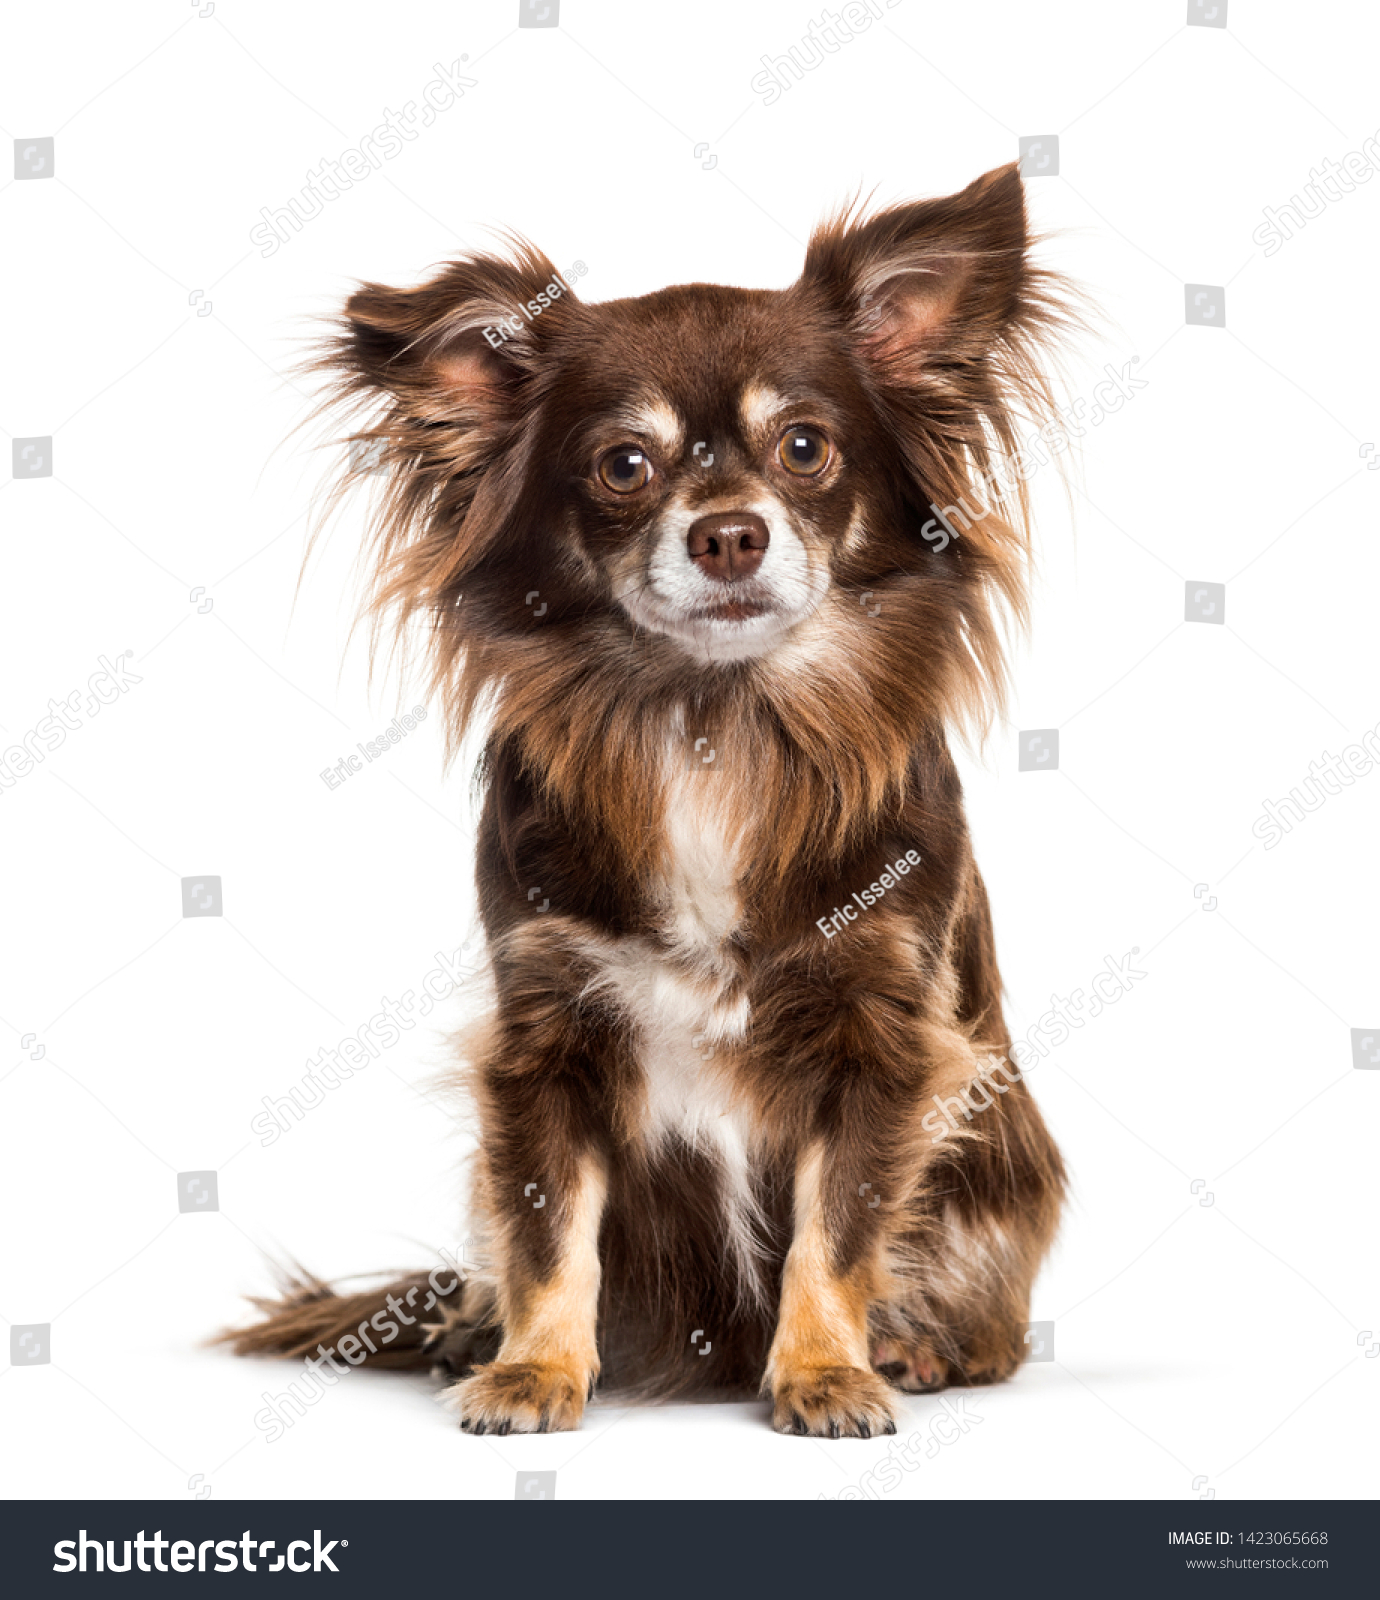 Chihuahua sitting against white background #1423065668